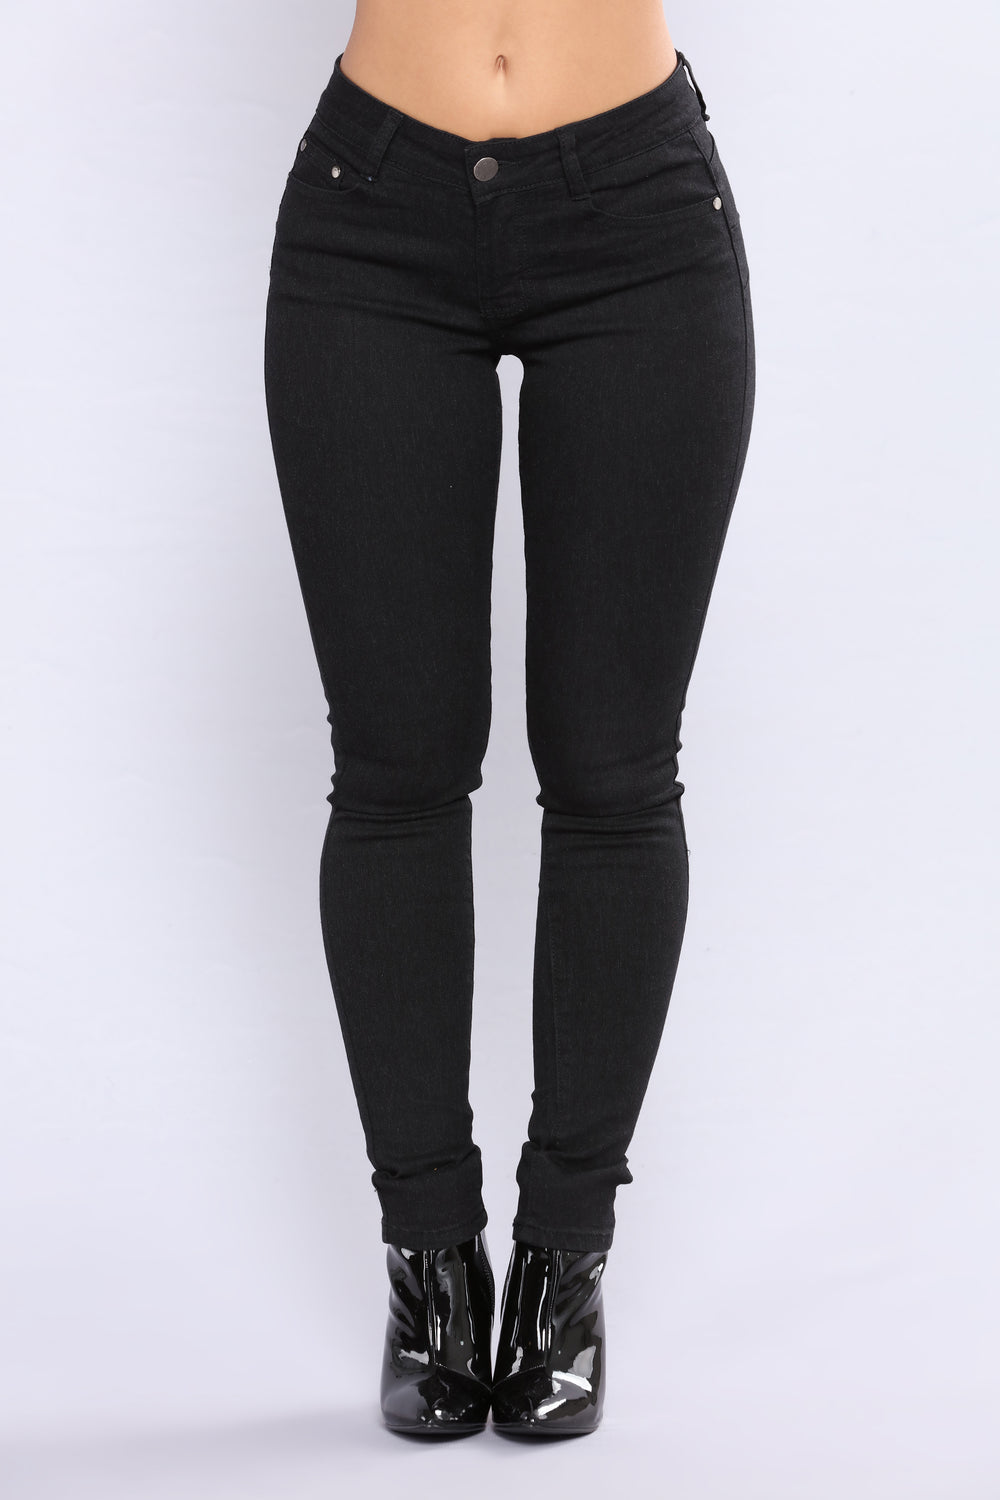 Do You Lift High Rise Jeans - Black